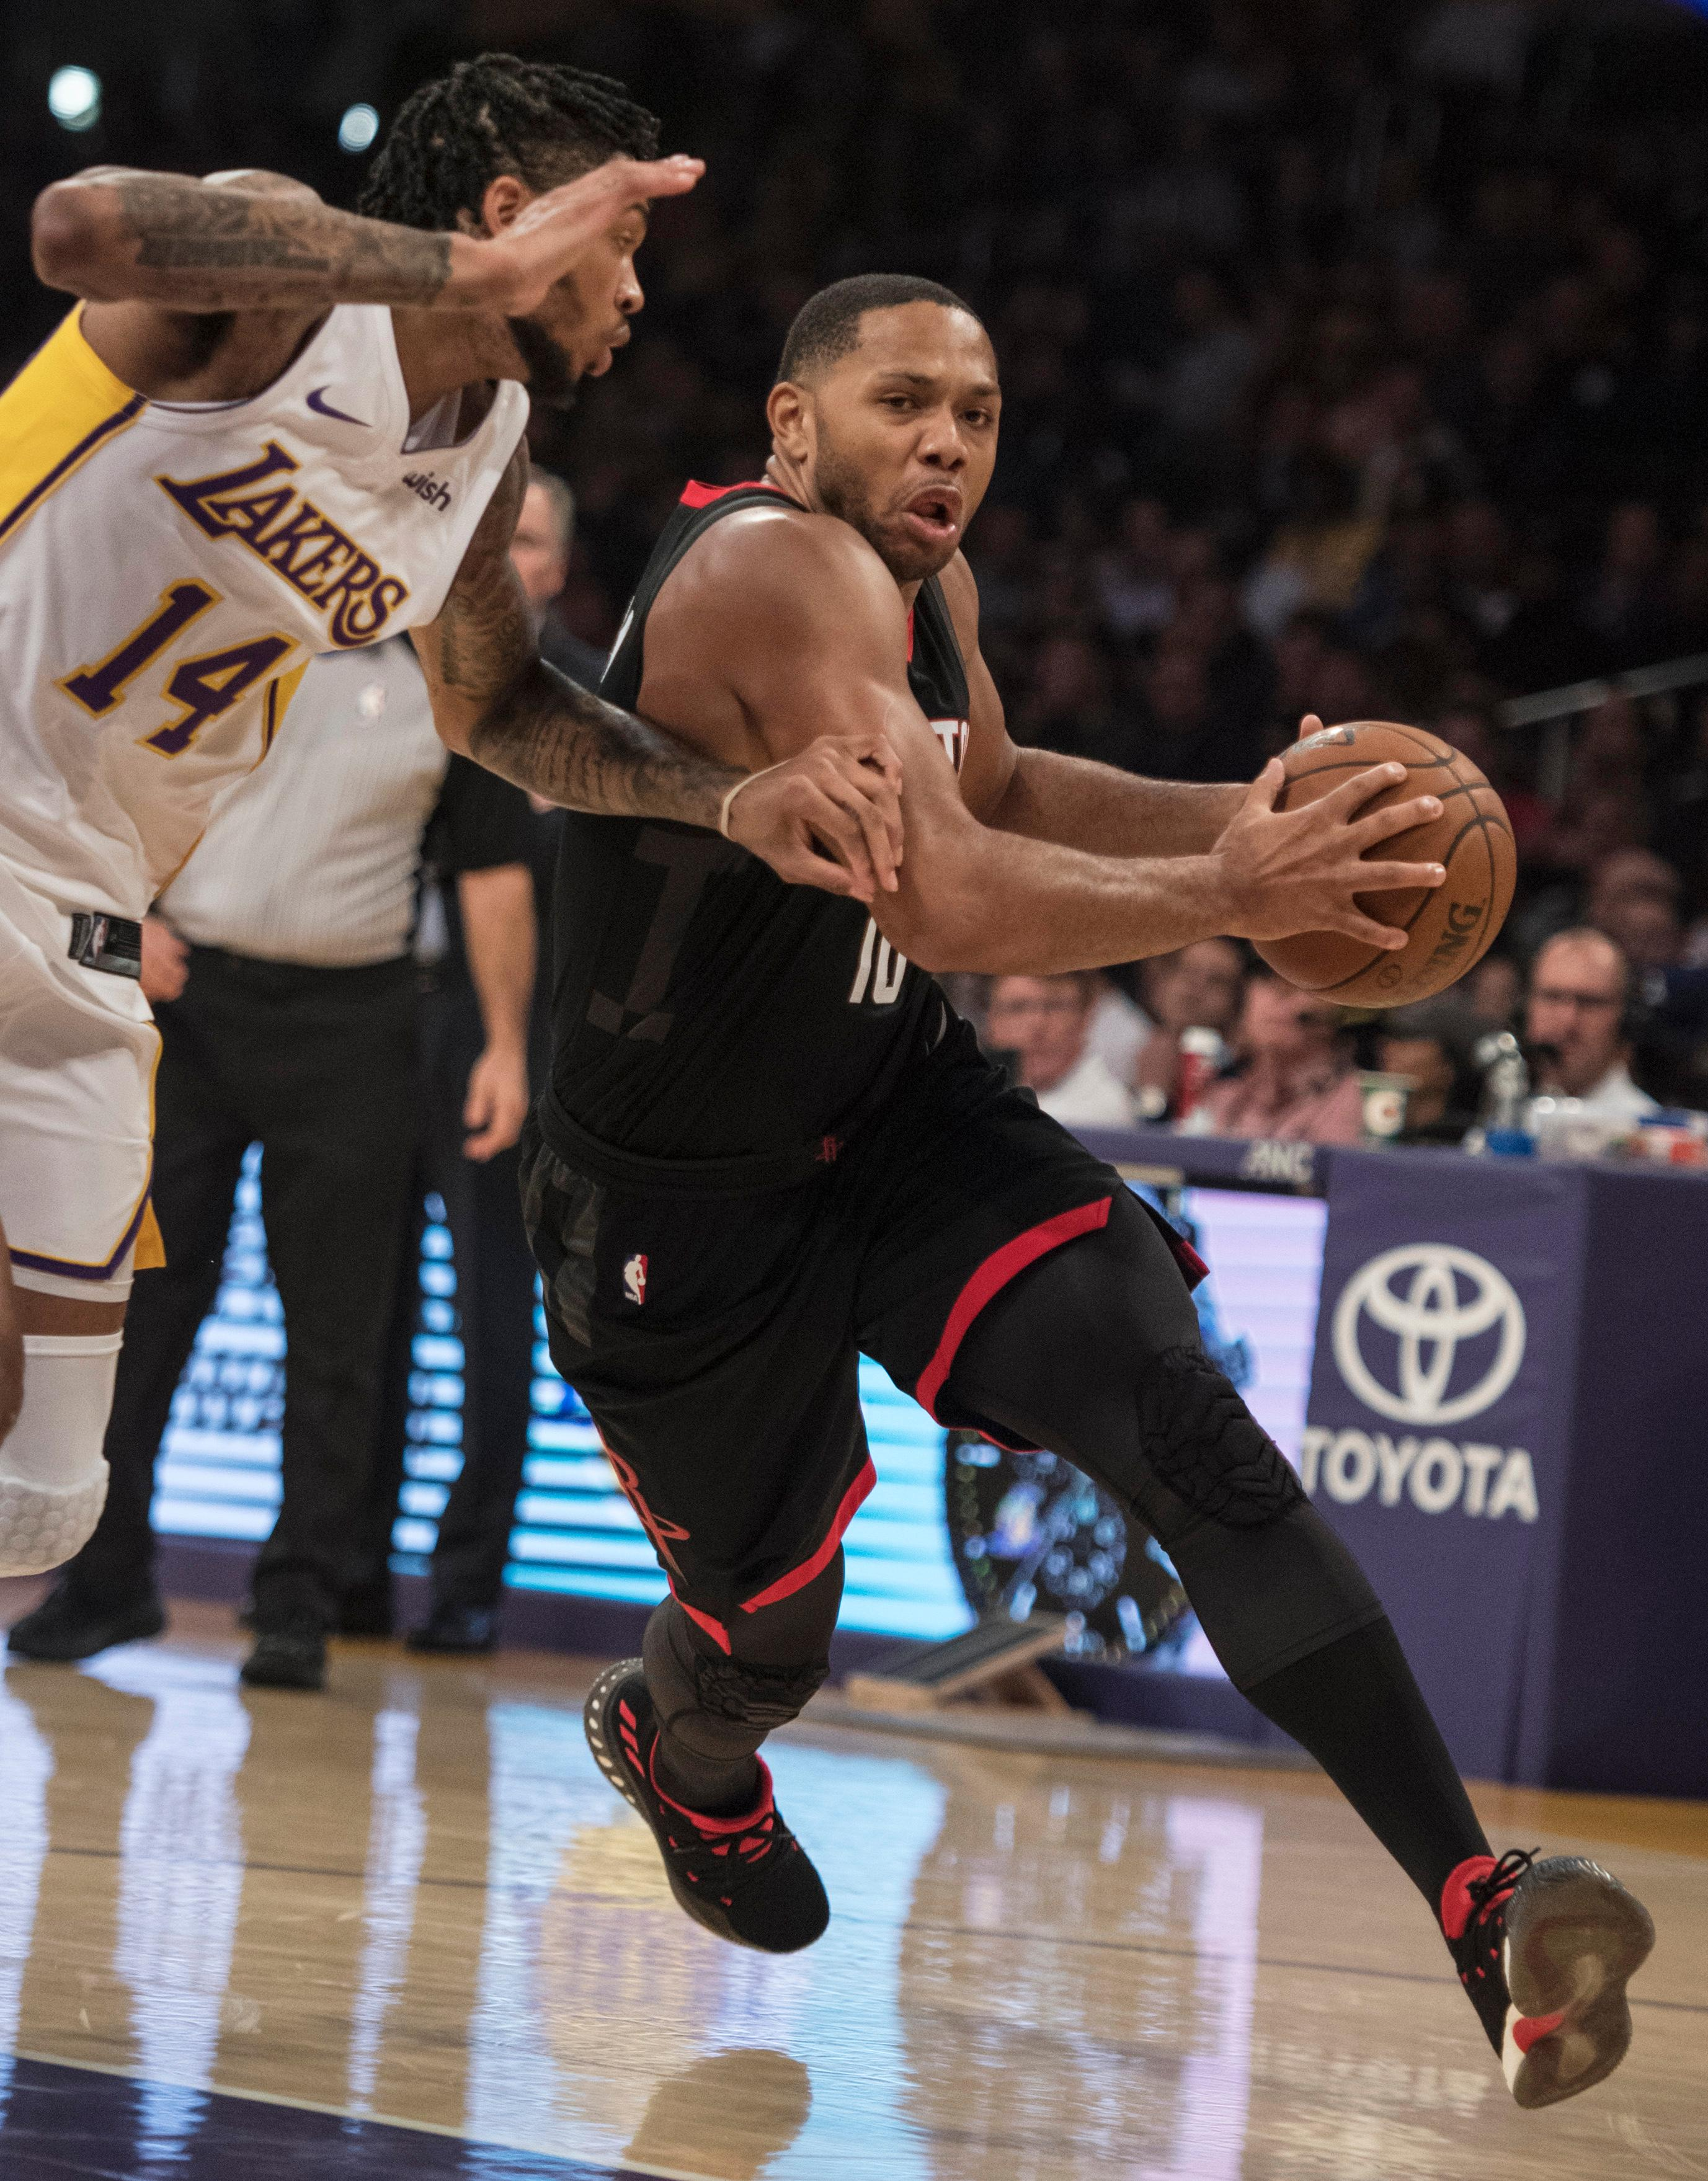 Houston Rockets guard Eric Gordon drives past Los Angeles Lakers forward Brandon Ingram (14) during the first half of an NBA basketball game Sunday, Dec. 3, 2017, in Los Angeles. (AP Photo/Kyusung Gong)